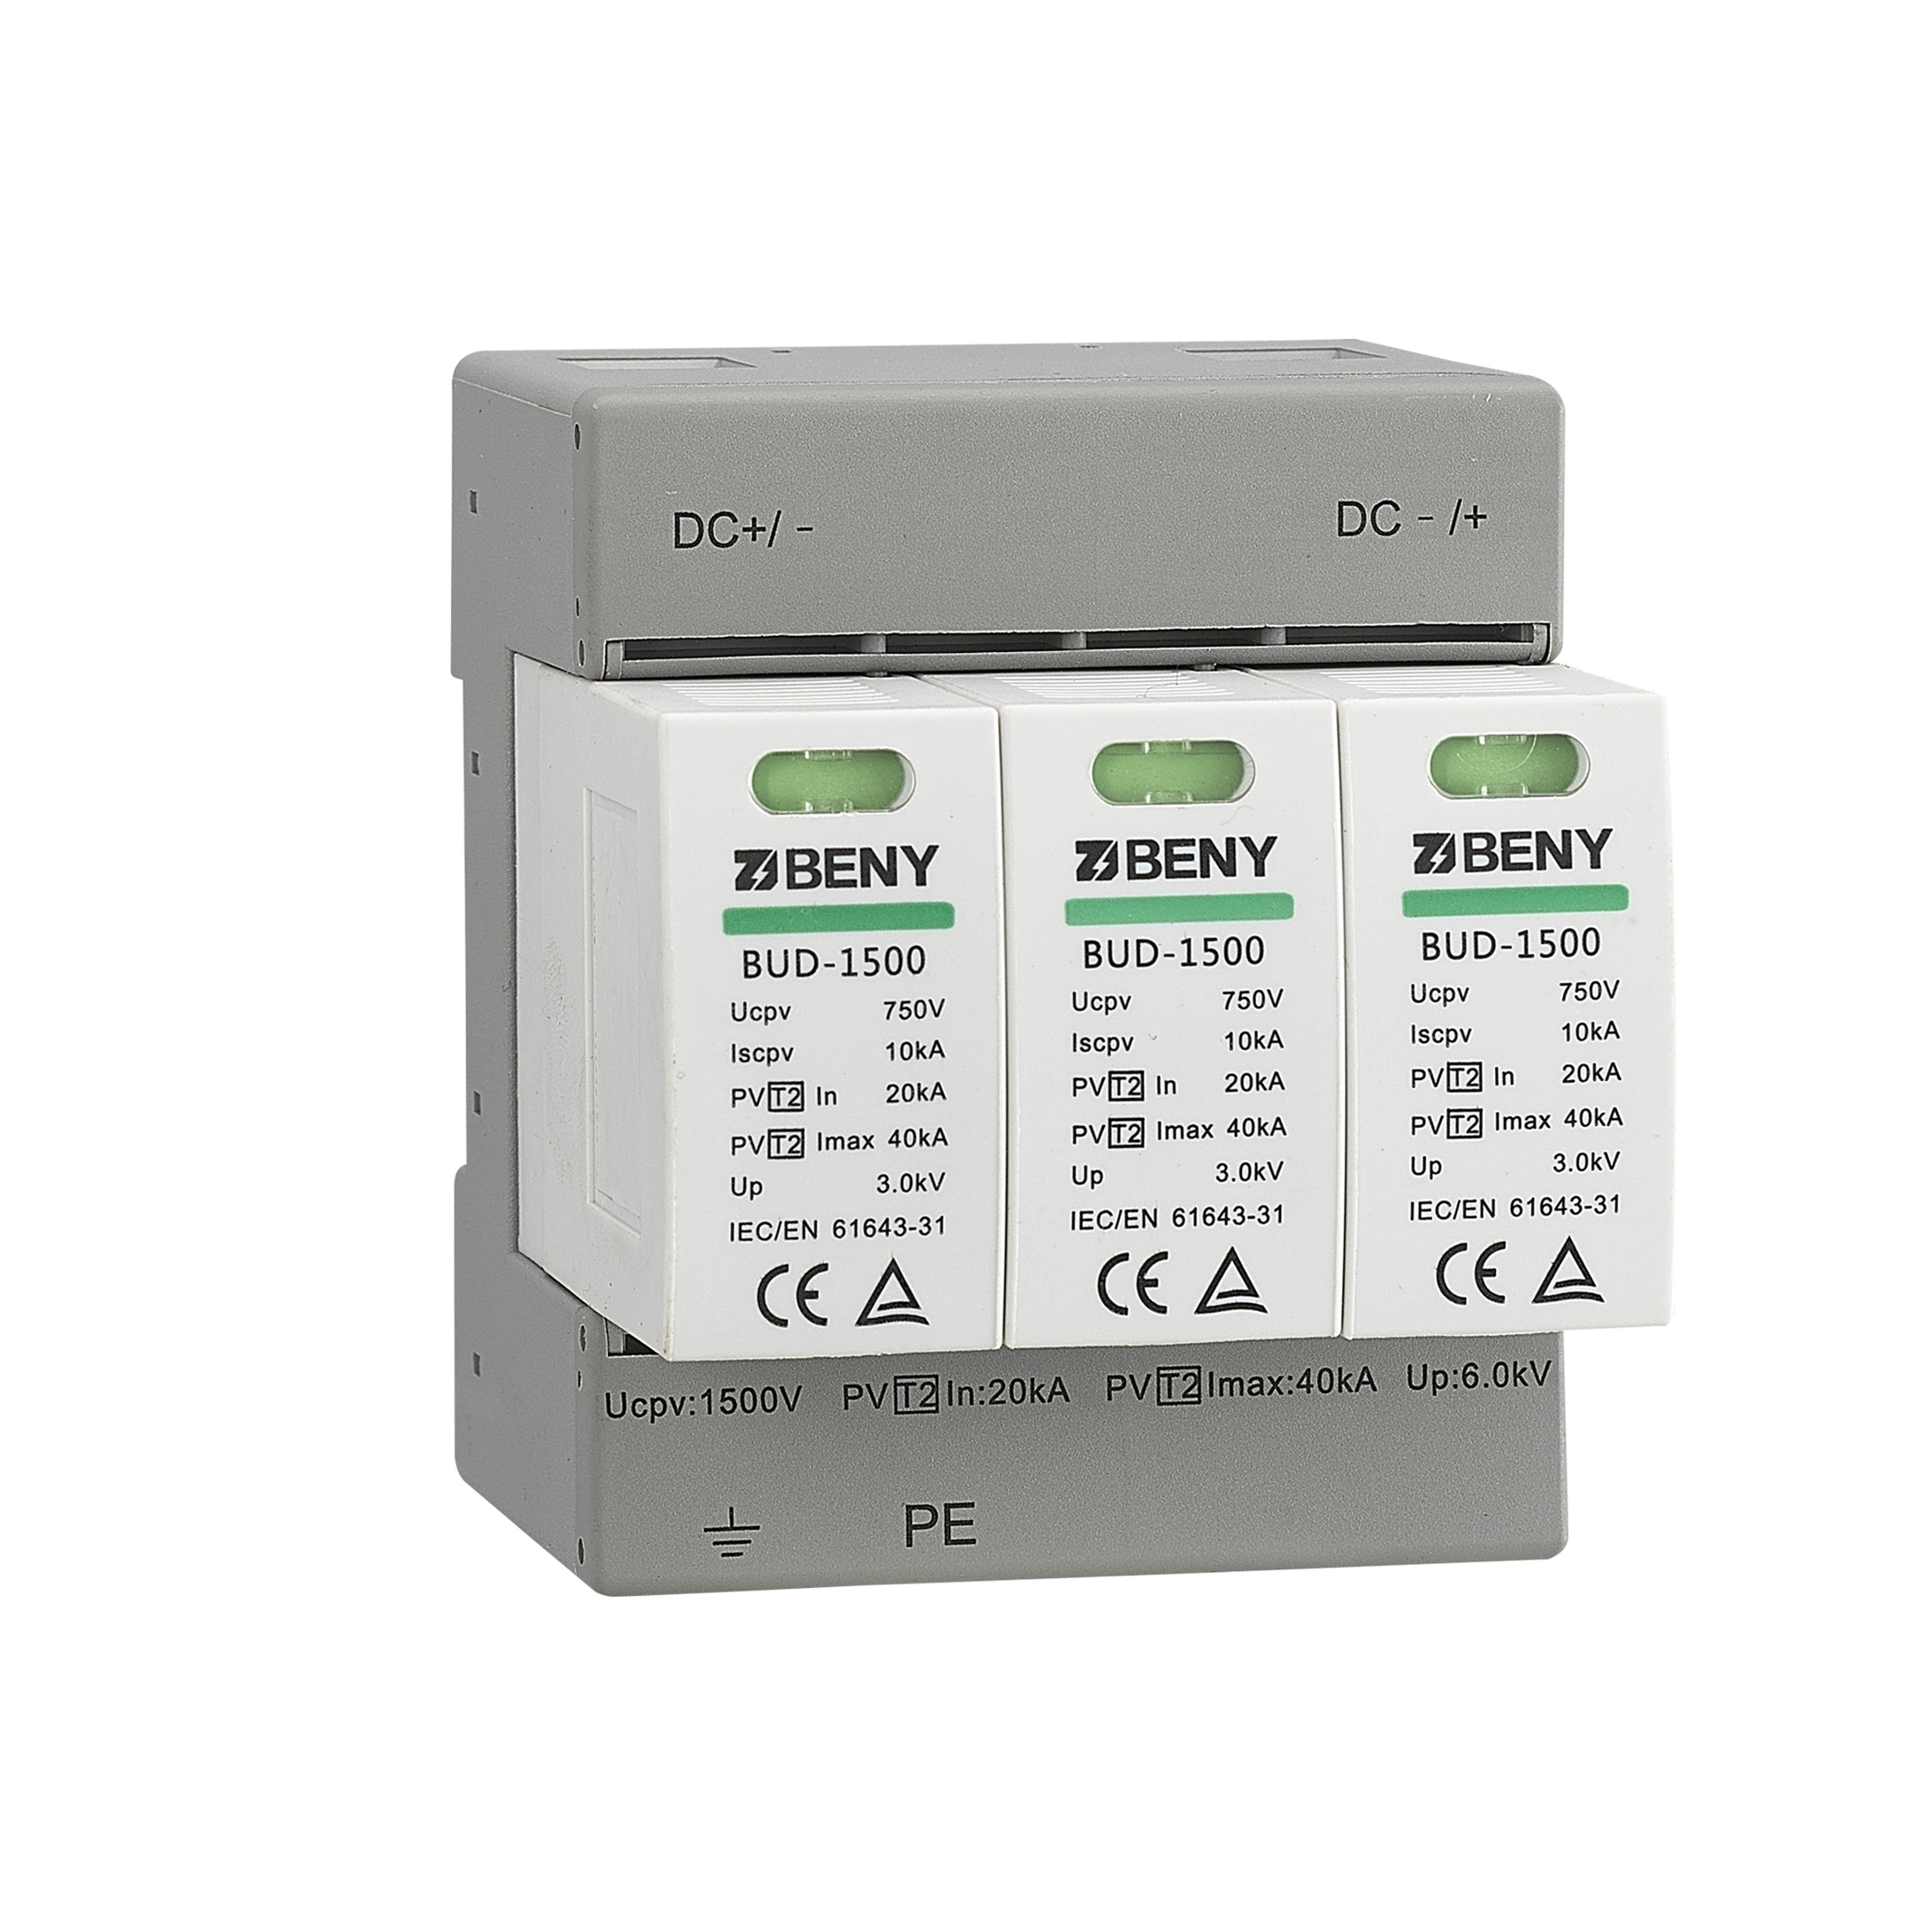 DC SPD Type2 up to 1500V